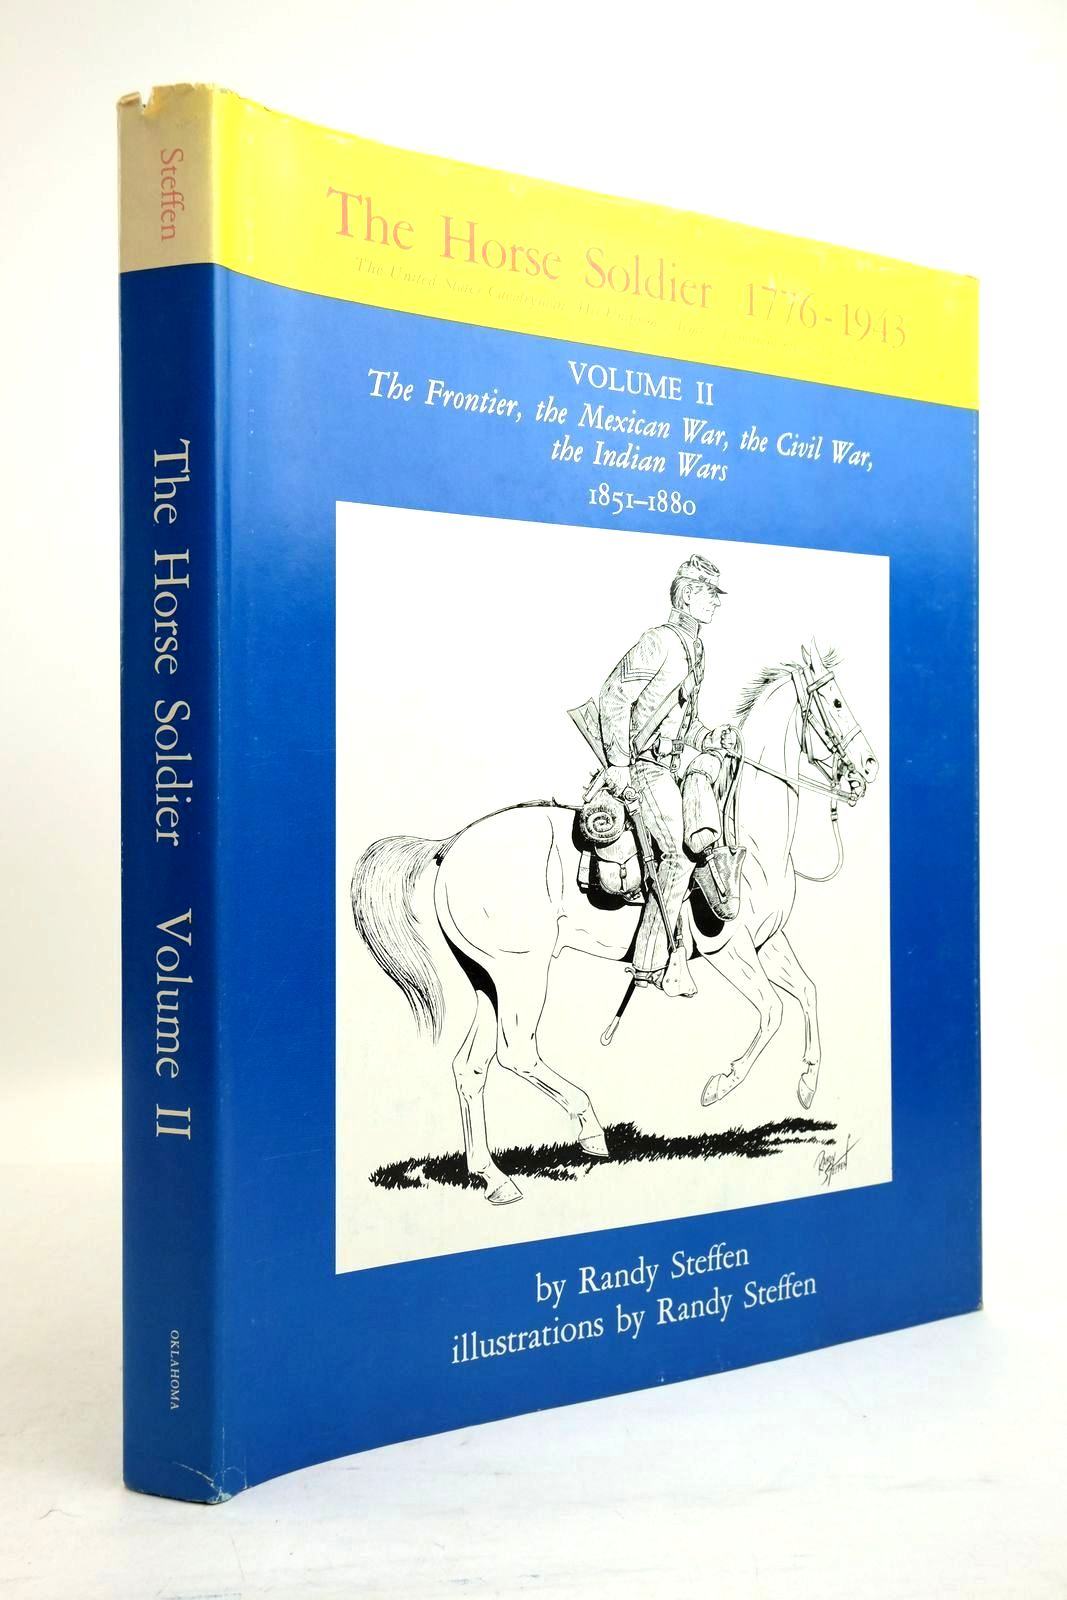 Photo of THE HORSE SOLDIER 1776-1943: VOLUME II: THE FRONTIER, THE MEXICAN WAR, THE CIVIL WAR, THE INDIAN WARS 1851-1880 written by Steffen, Randy illustrated by Steffen, Randy published by University of Oklahoma Press (STOCK CODE: 2134514)  for sale by Stella & Rose's Books